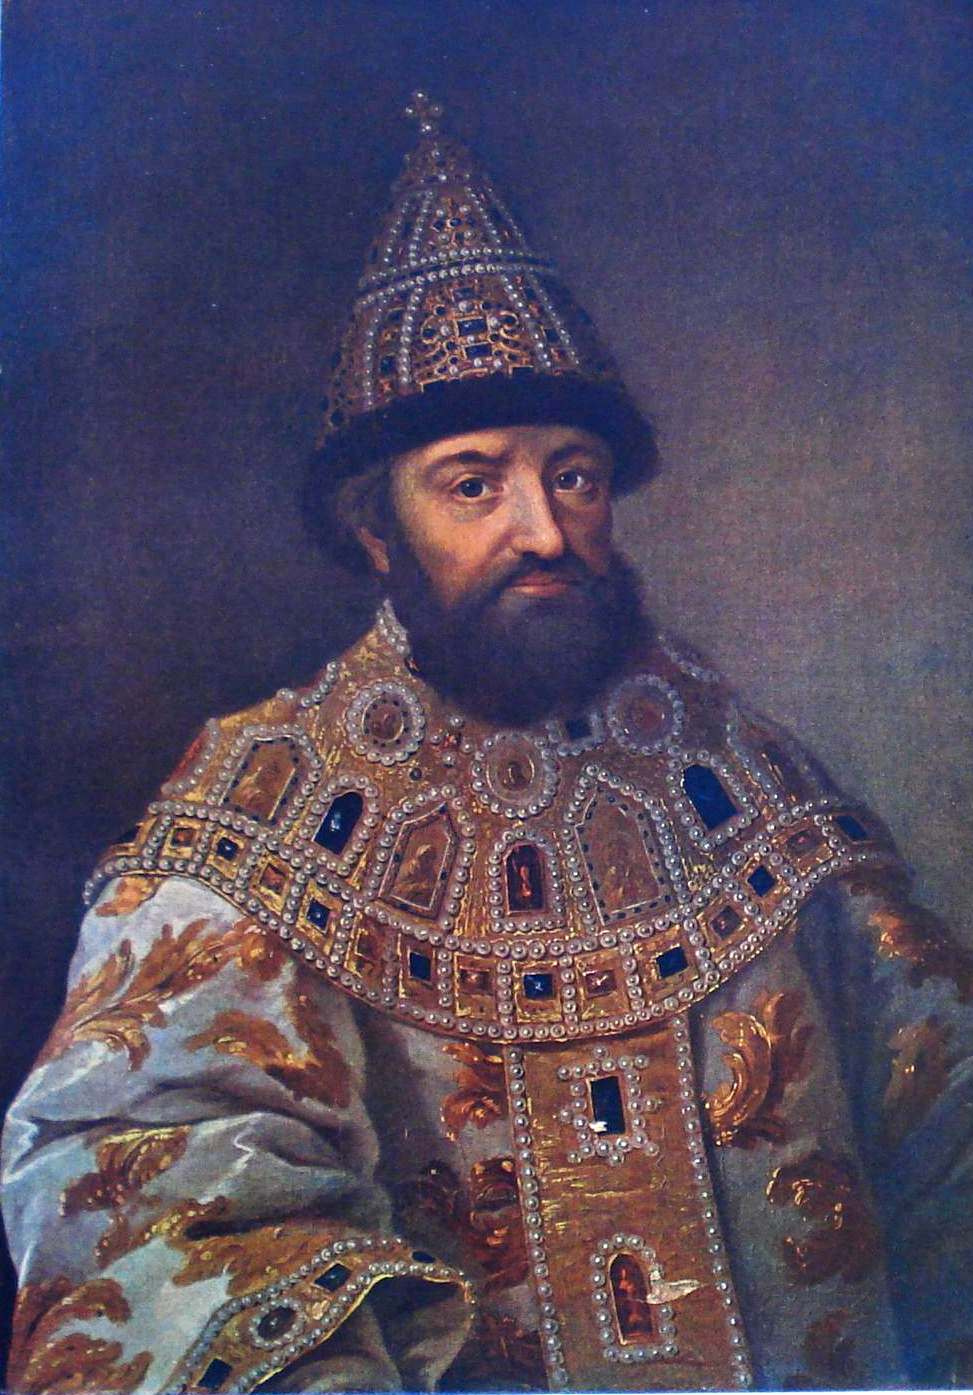 Michael Romanov was the Tsar of Russia during this turbulent time, and would actually rule for the duration of the TYW, though his reign was hampered by Poland's powerful king Sigismund III and the regular interventions he made into his country.